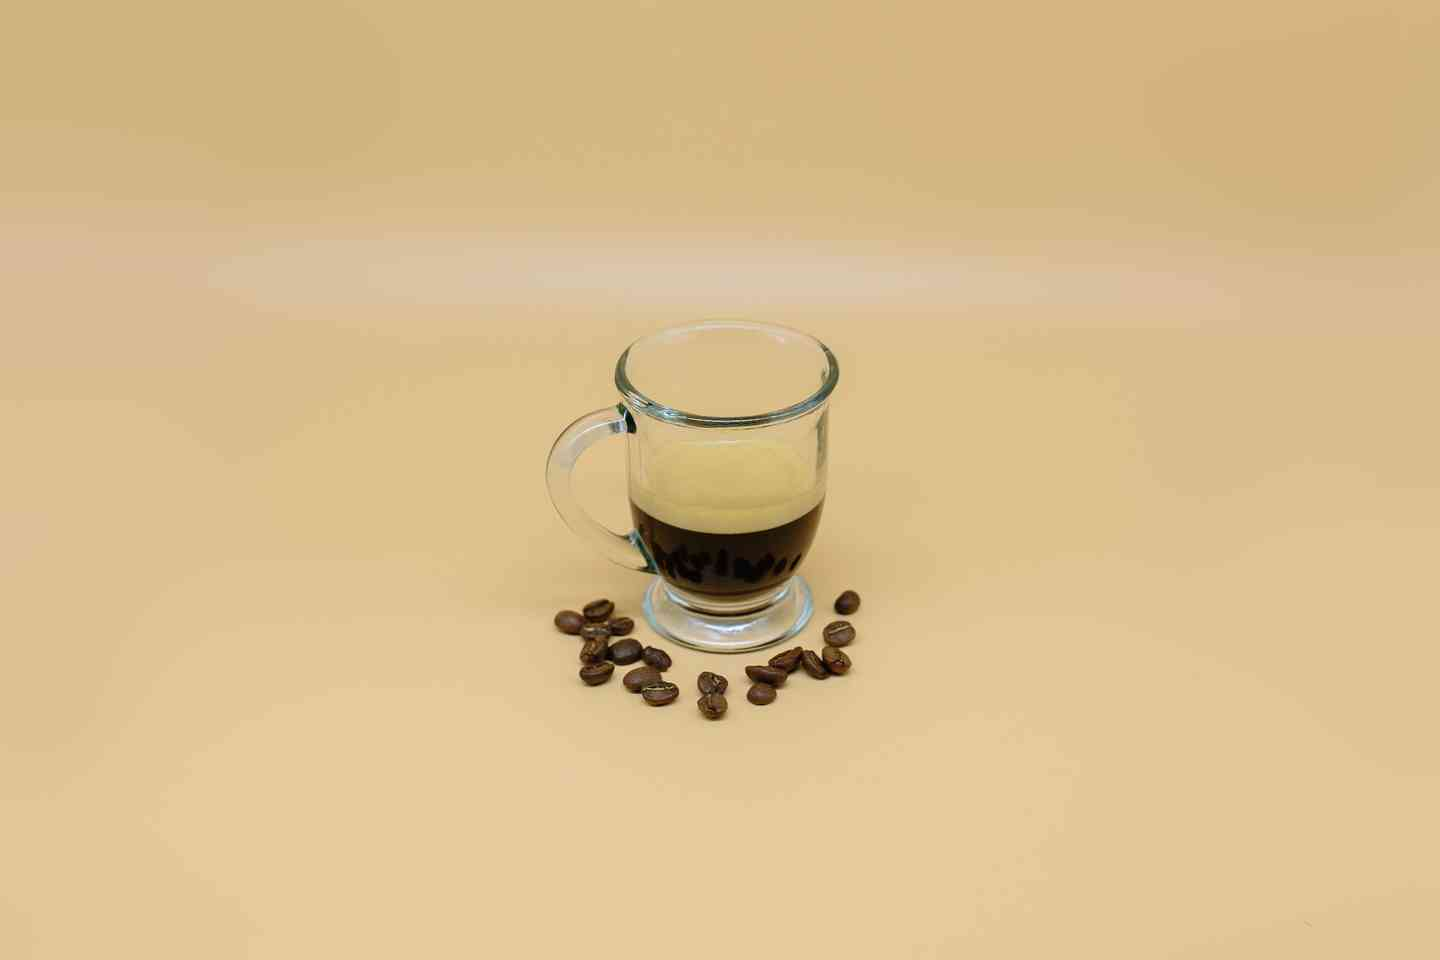 Black Coffee or Espresso Shot